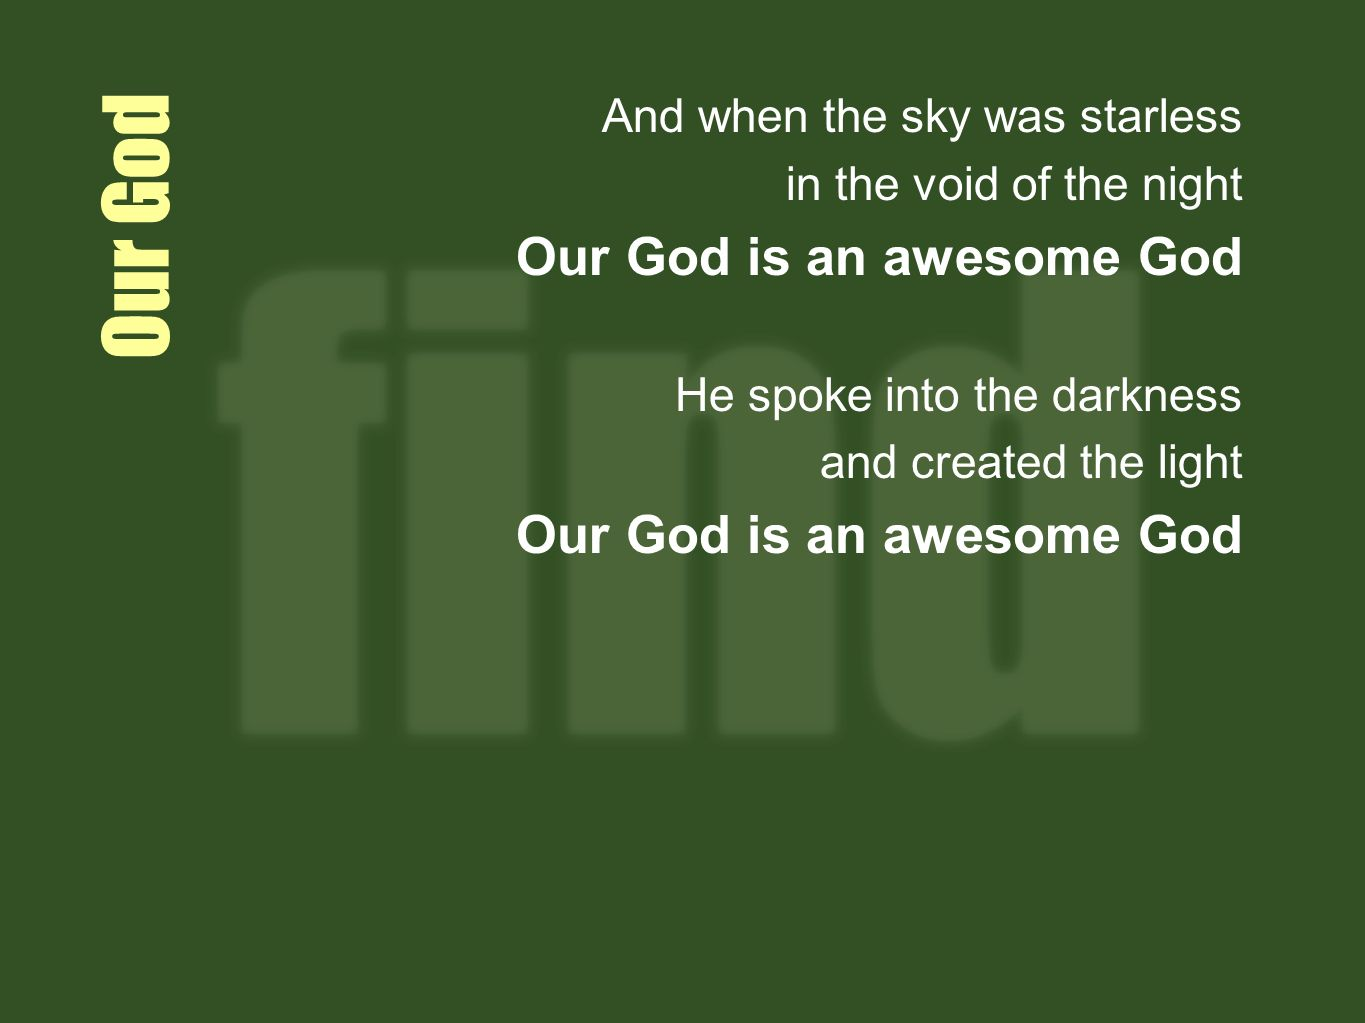 Our God Our God is an awesome God And when the sky was starless